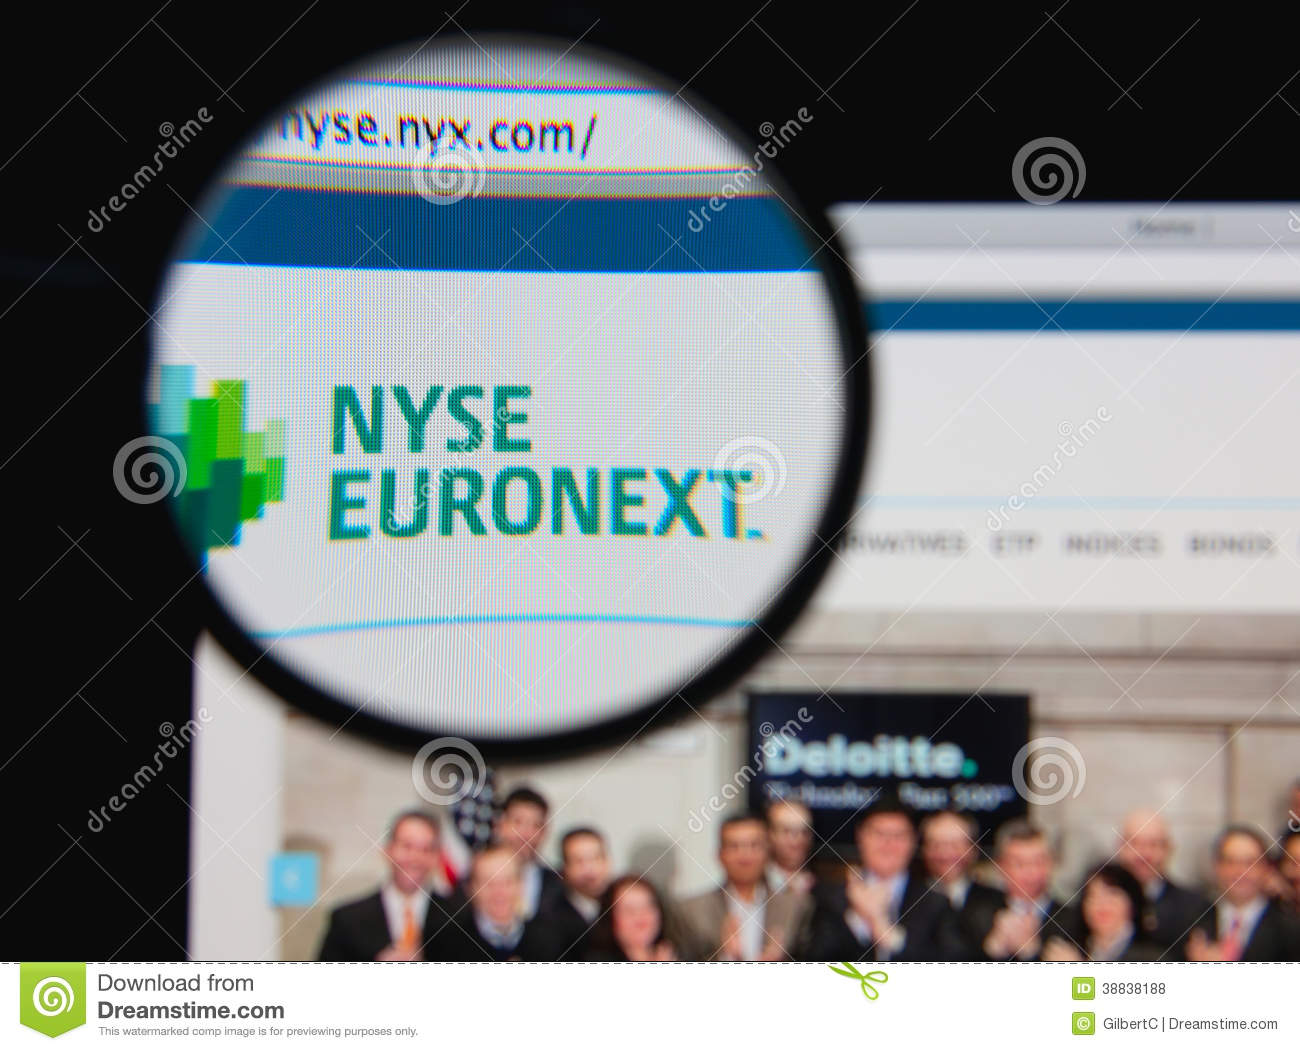 Nyse euronext stock options